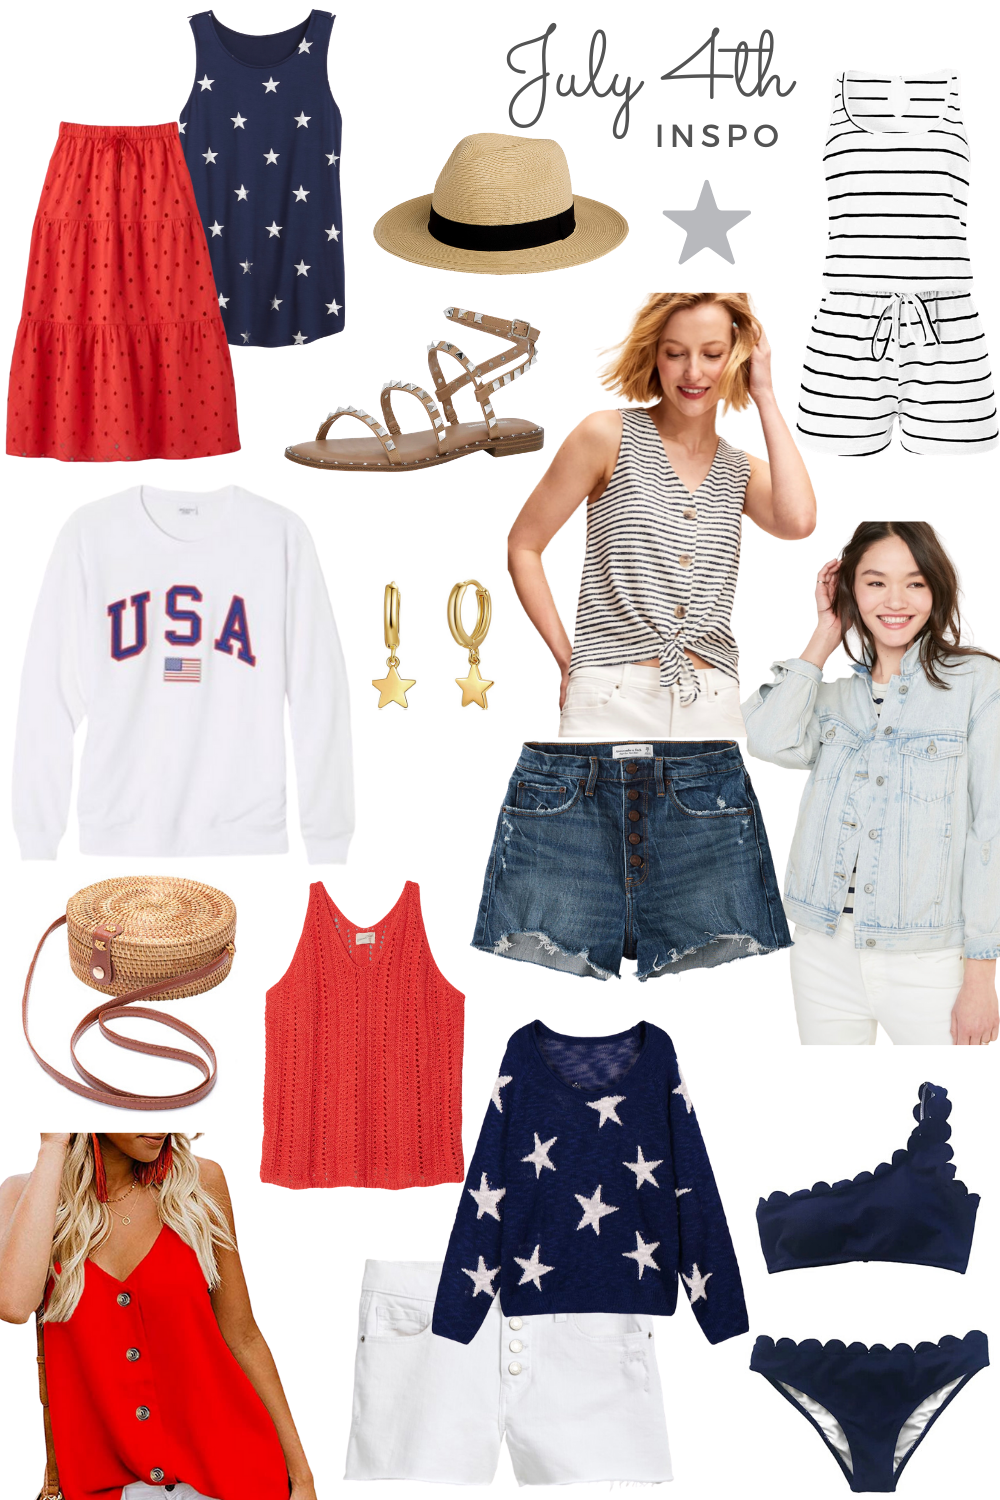 July 4th outfit inso